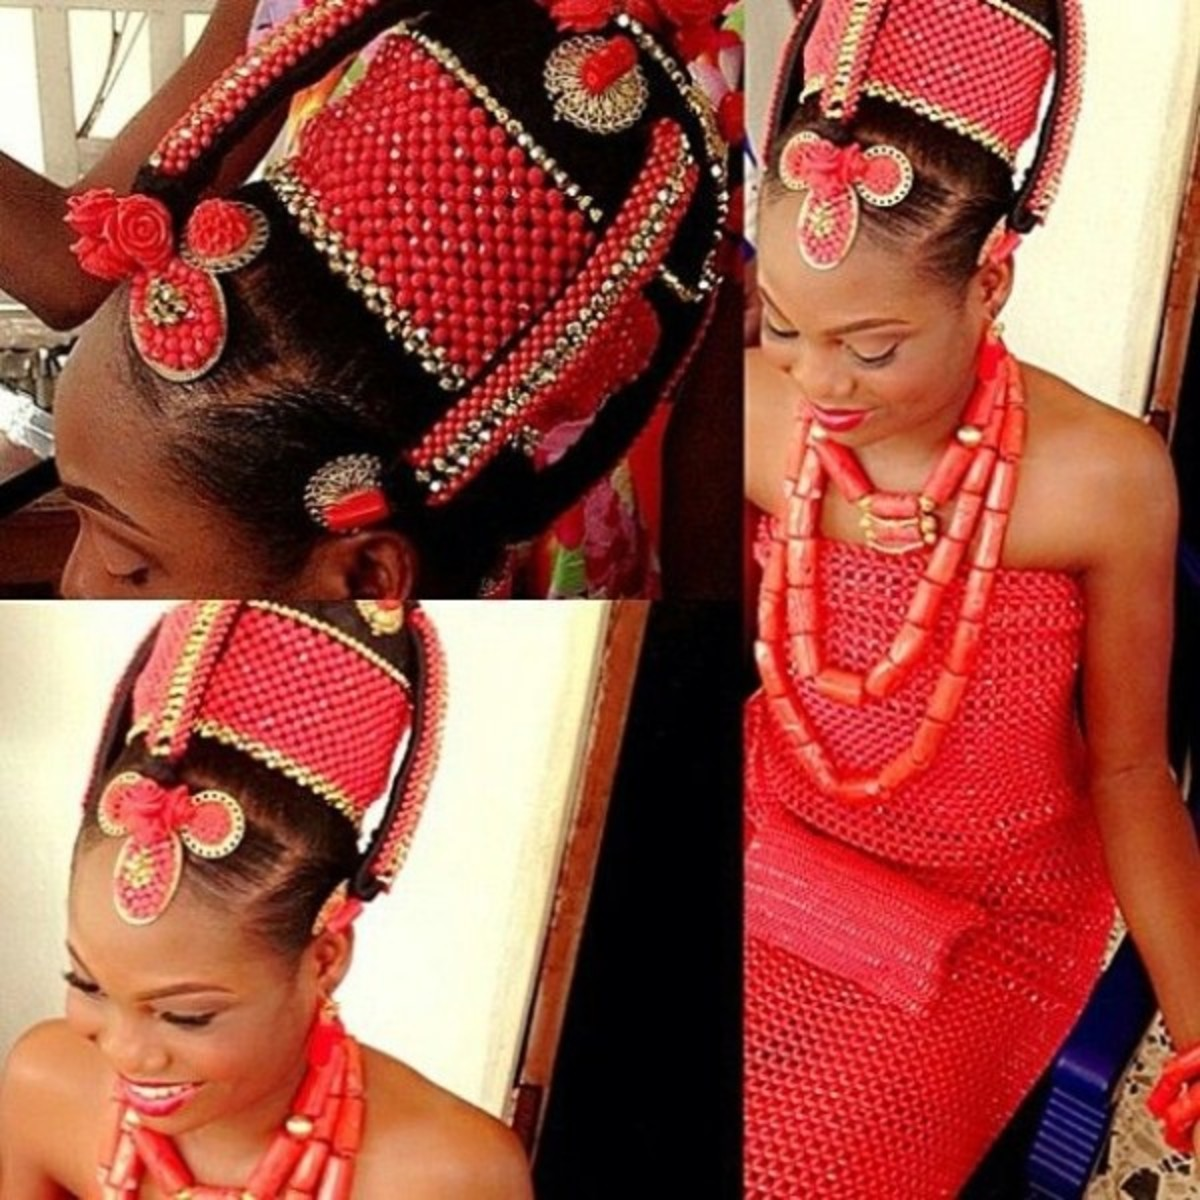 Edo bride from Nigeria